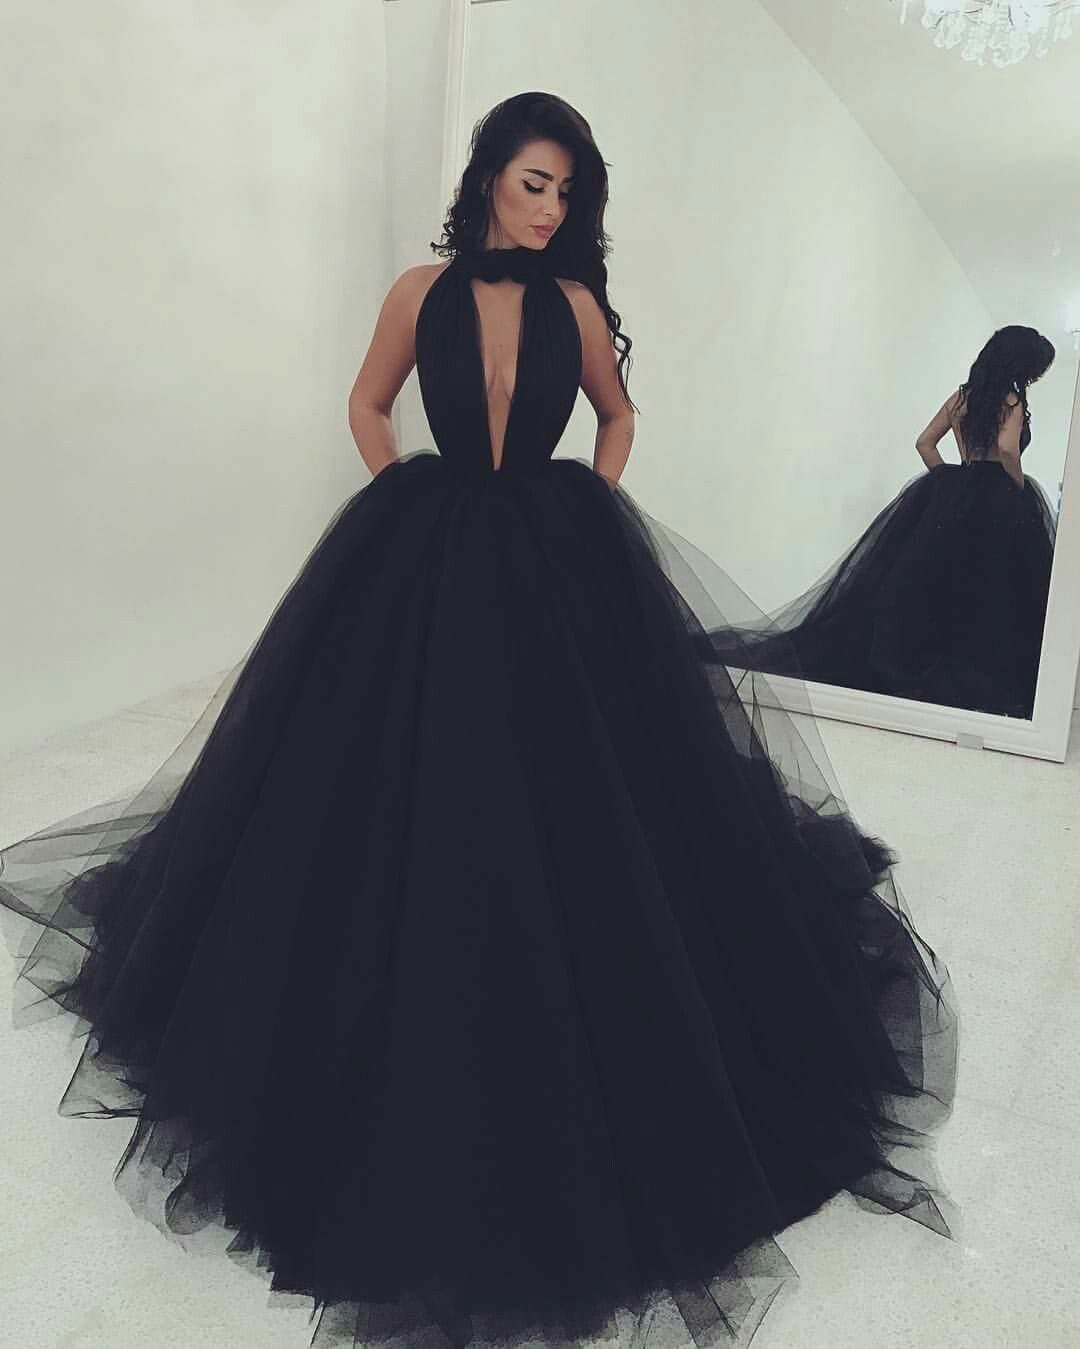 Pin by Sharon Bismuth on À acheter | Pinterest | Prom, Clothes and Gowns